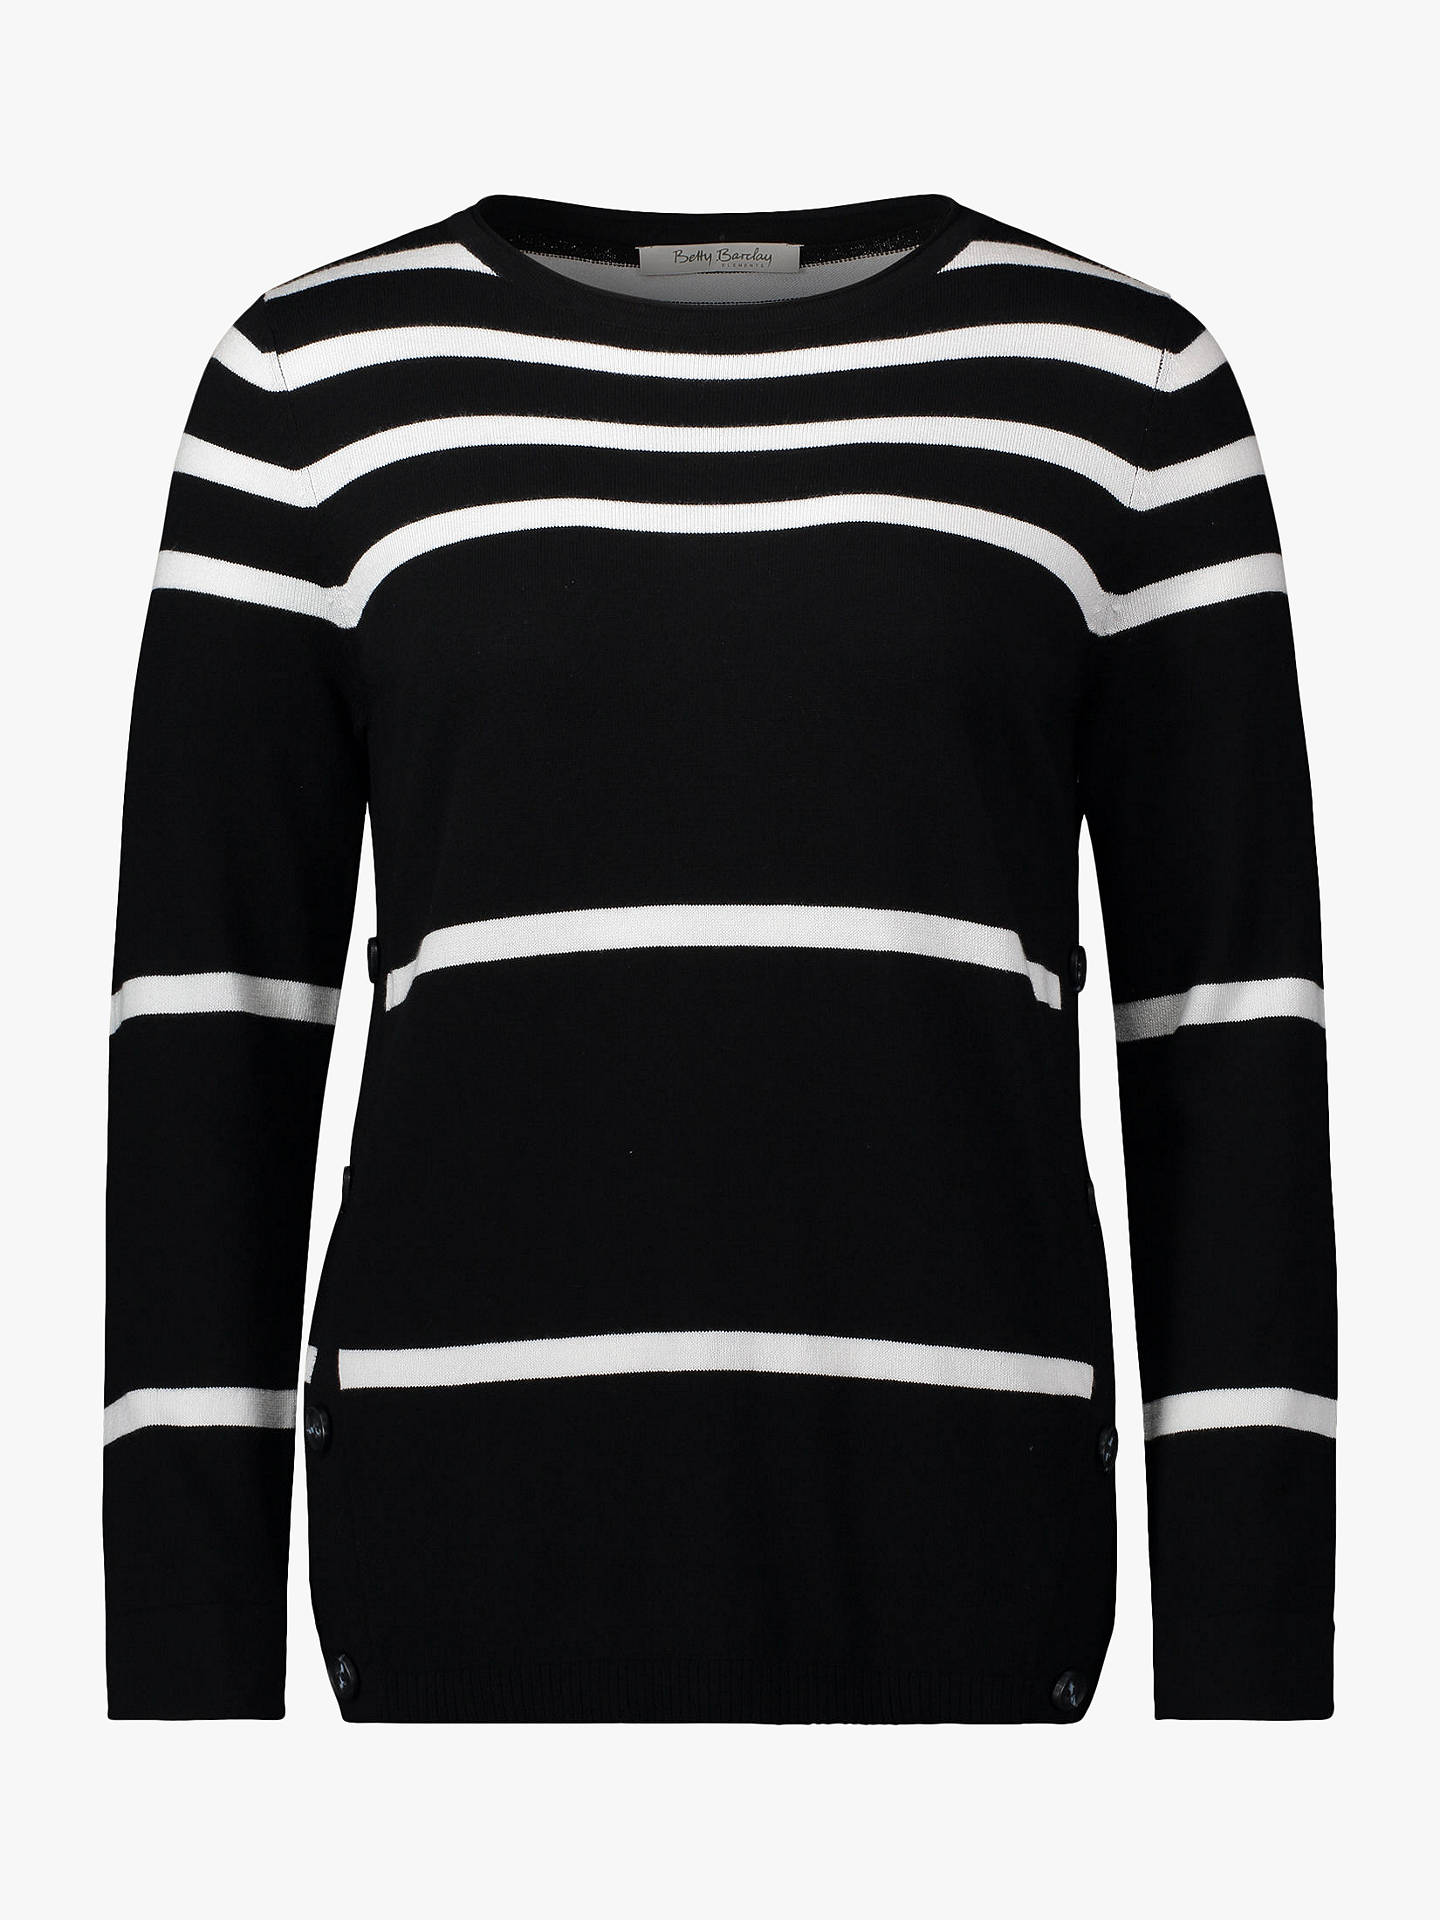 BuyBetty Barclay Striped Button Jumper, Black/Cream, 14 Online at johnlewis.com